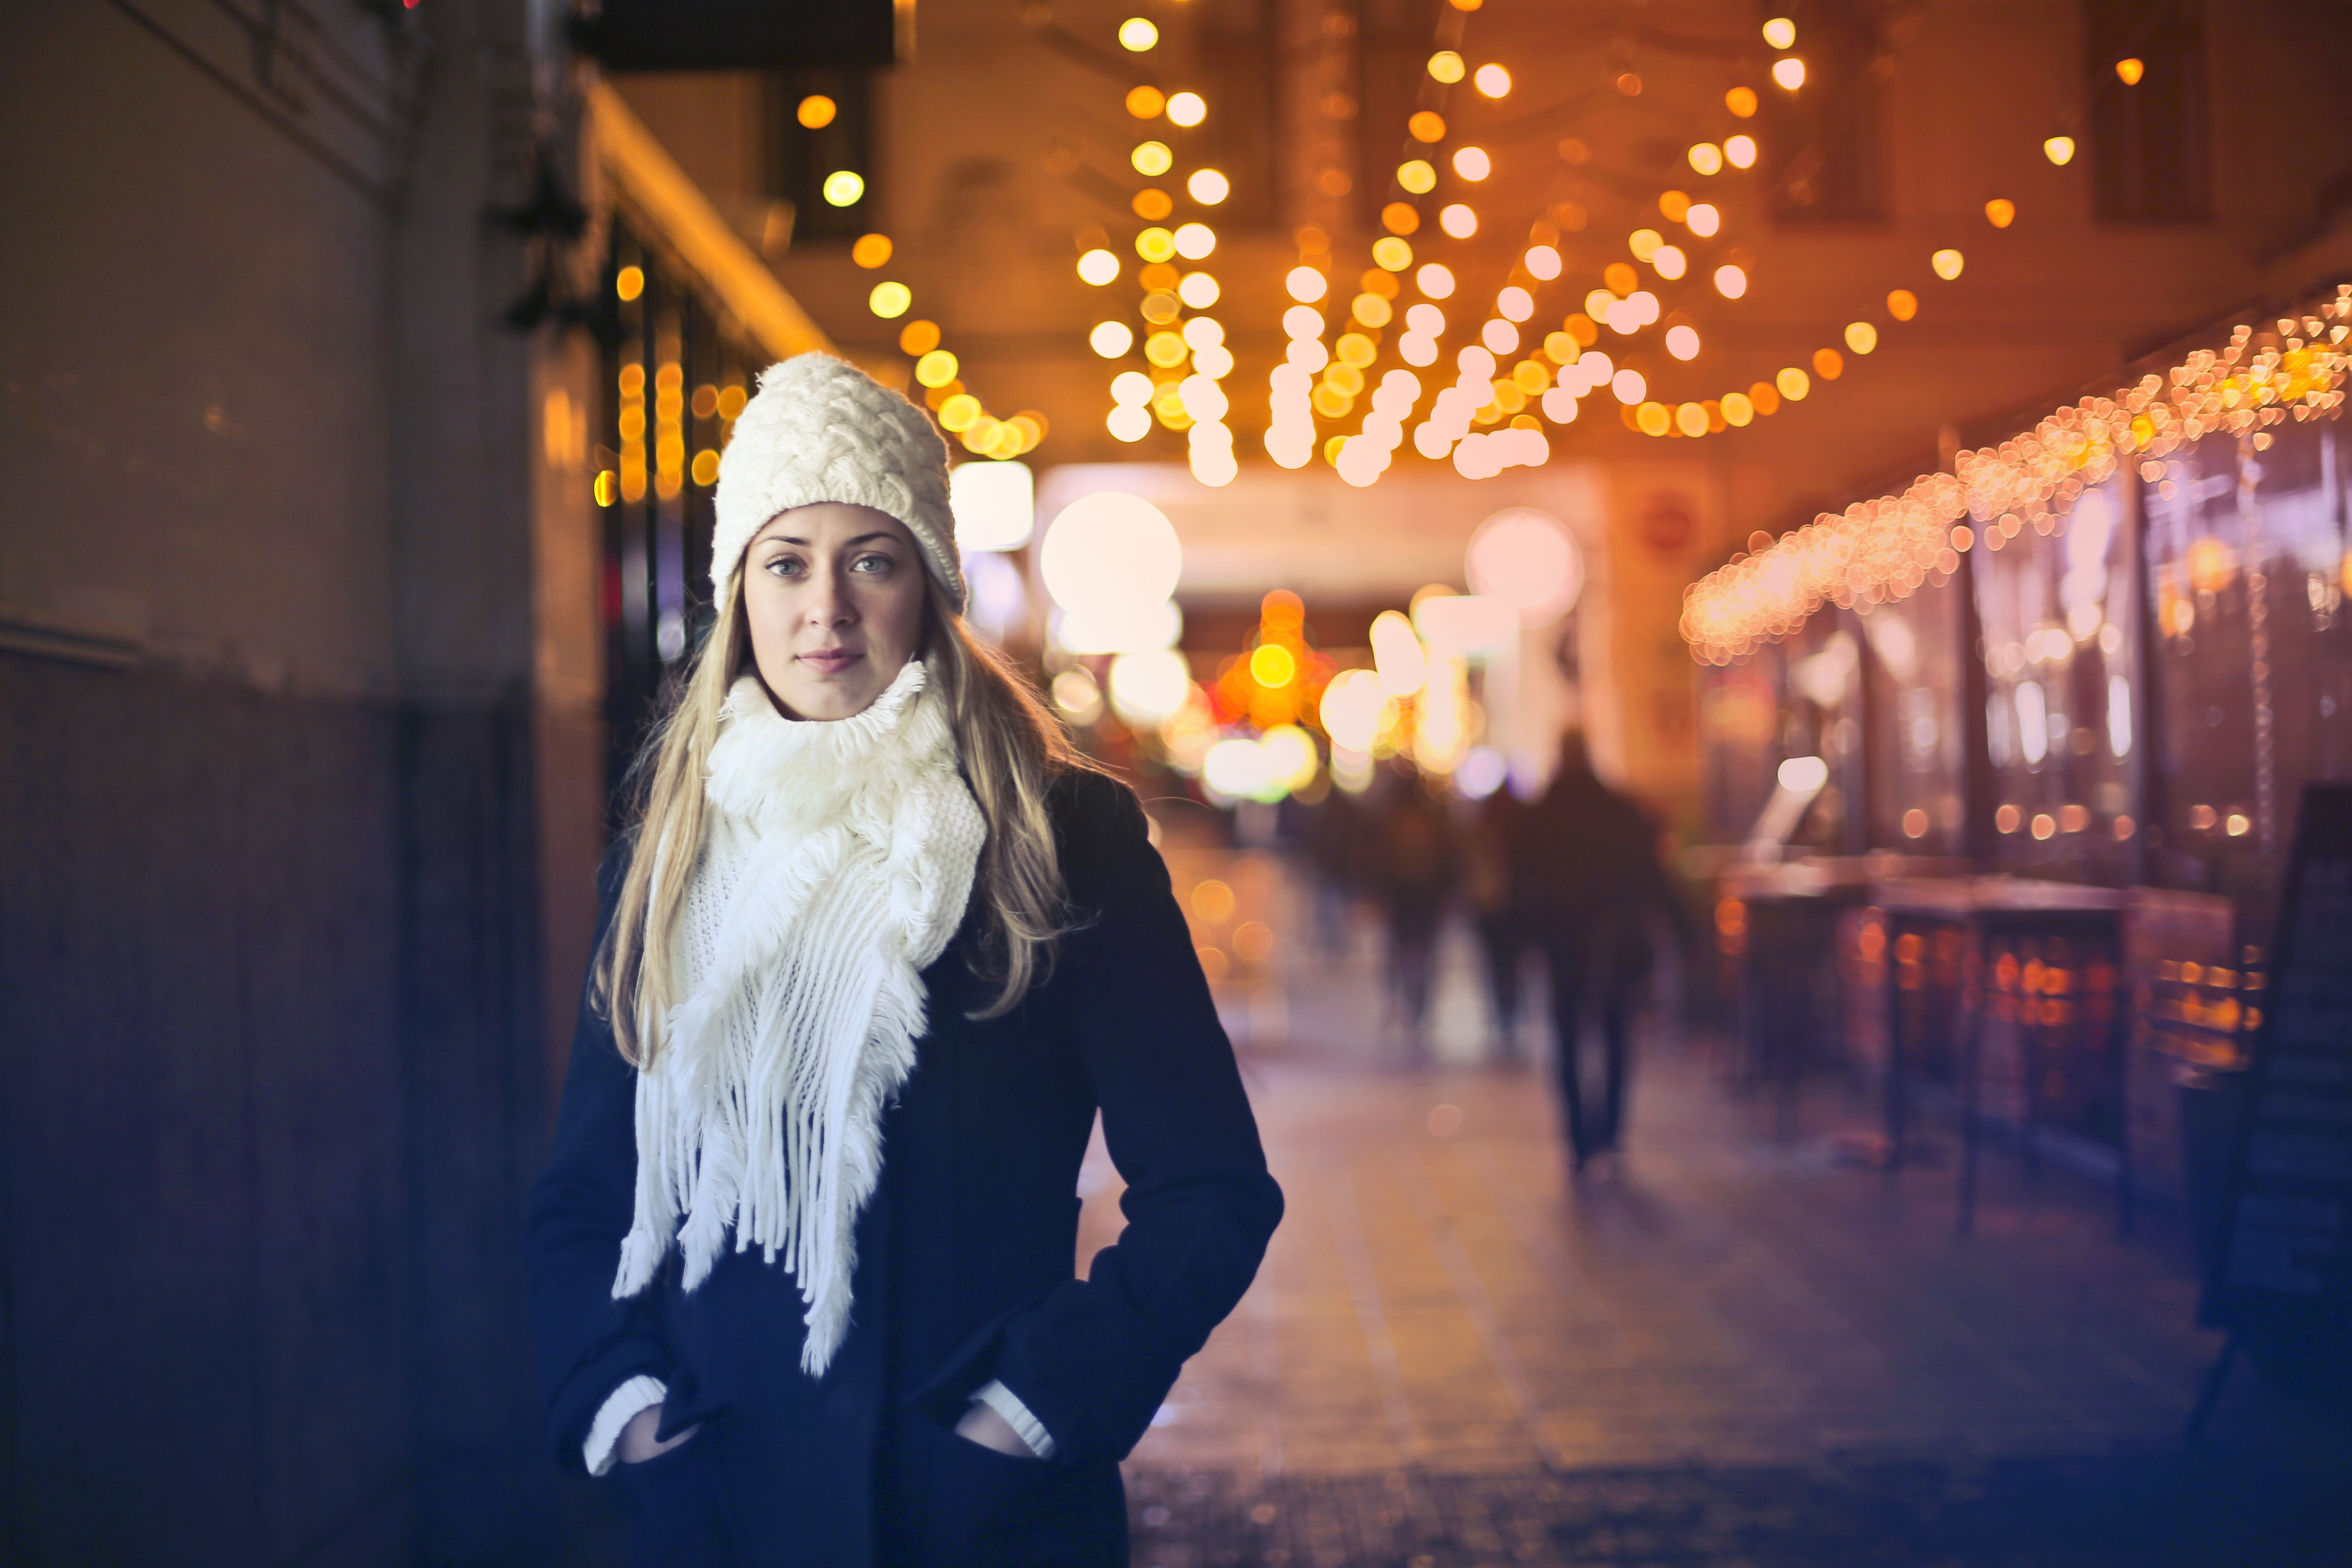 Woman In Black Long-sleeved Top With White Scarf, Beanie, Girl, Winter, Wear, HQ Photo